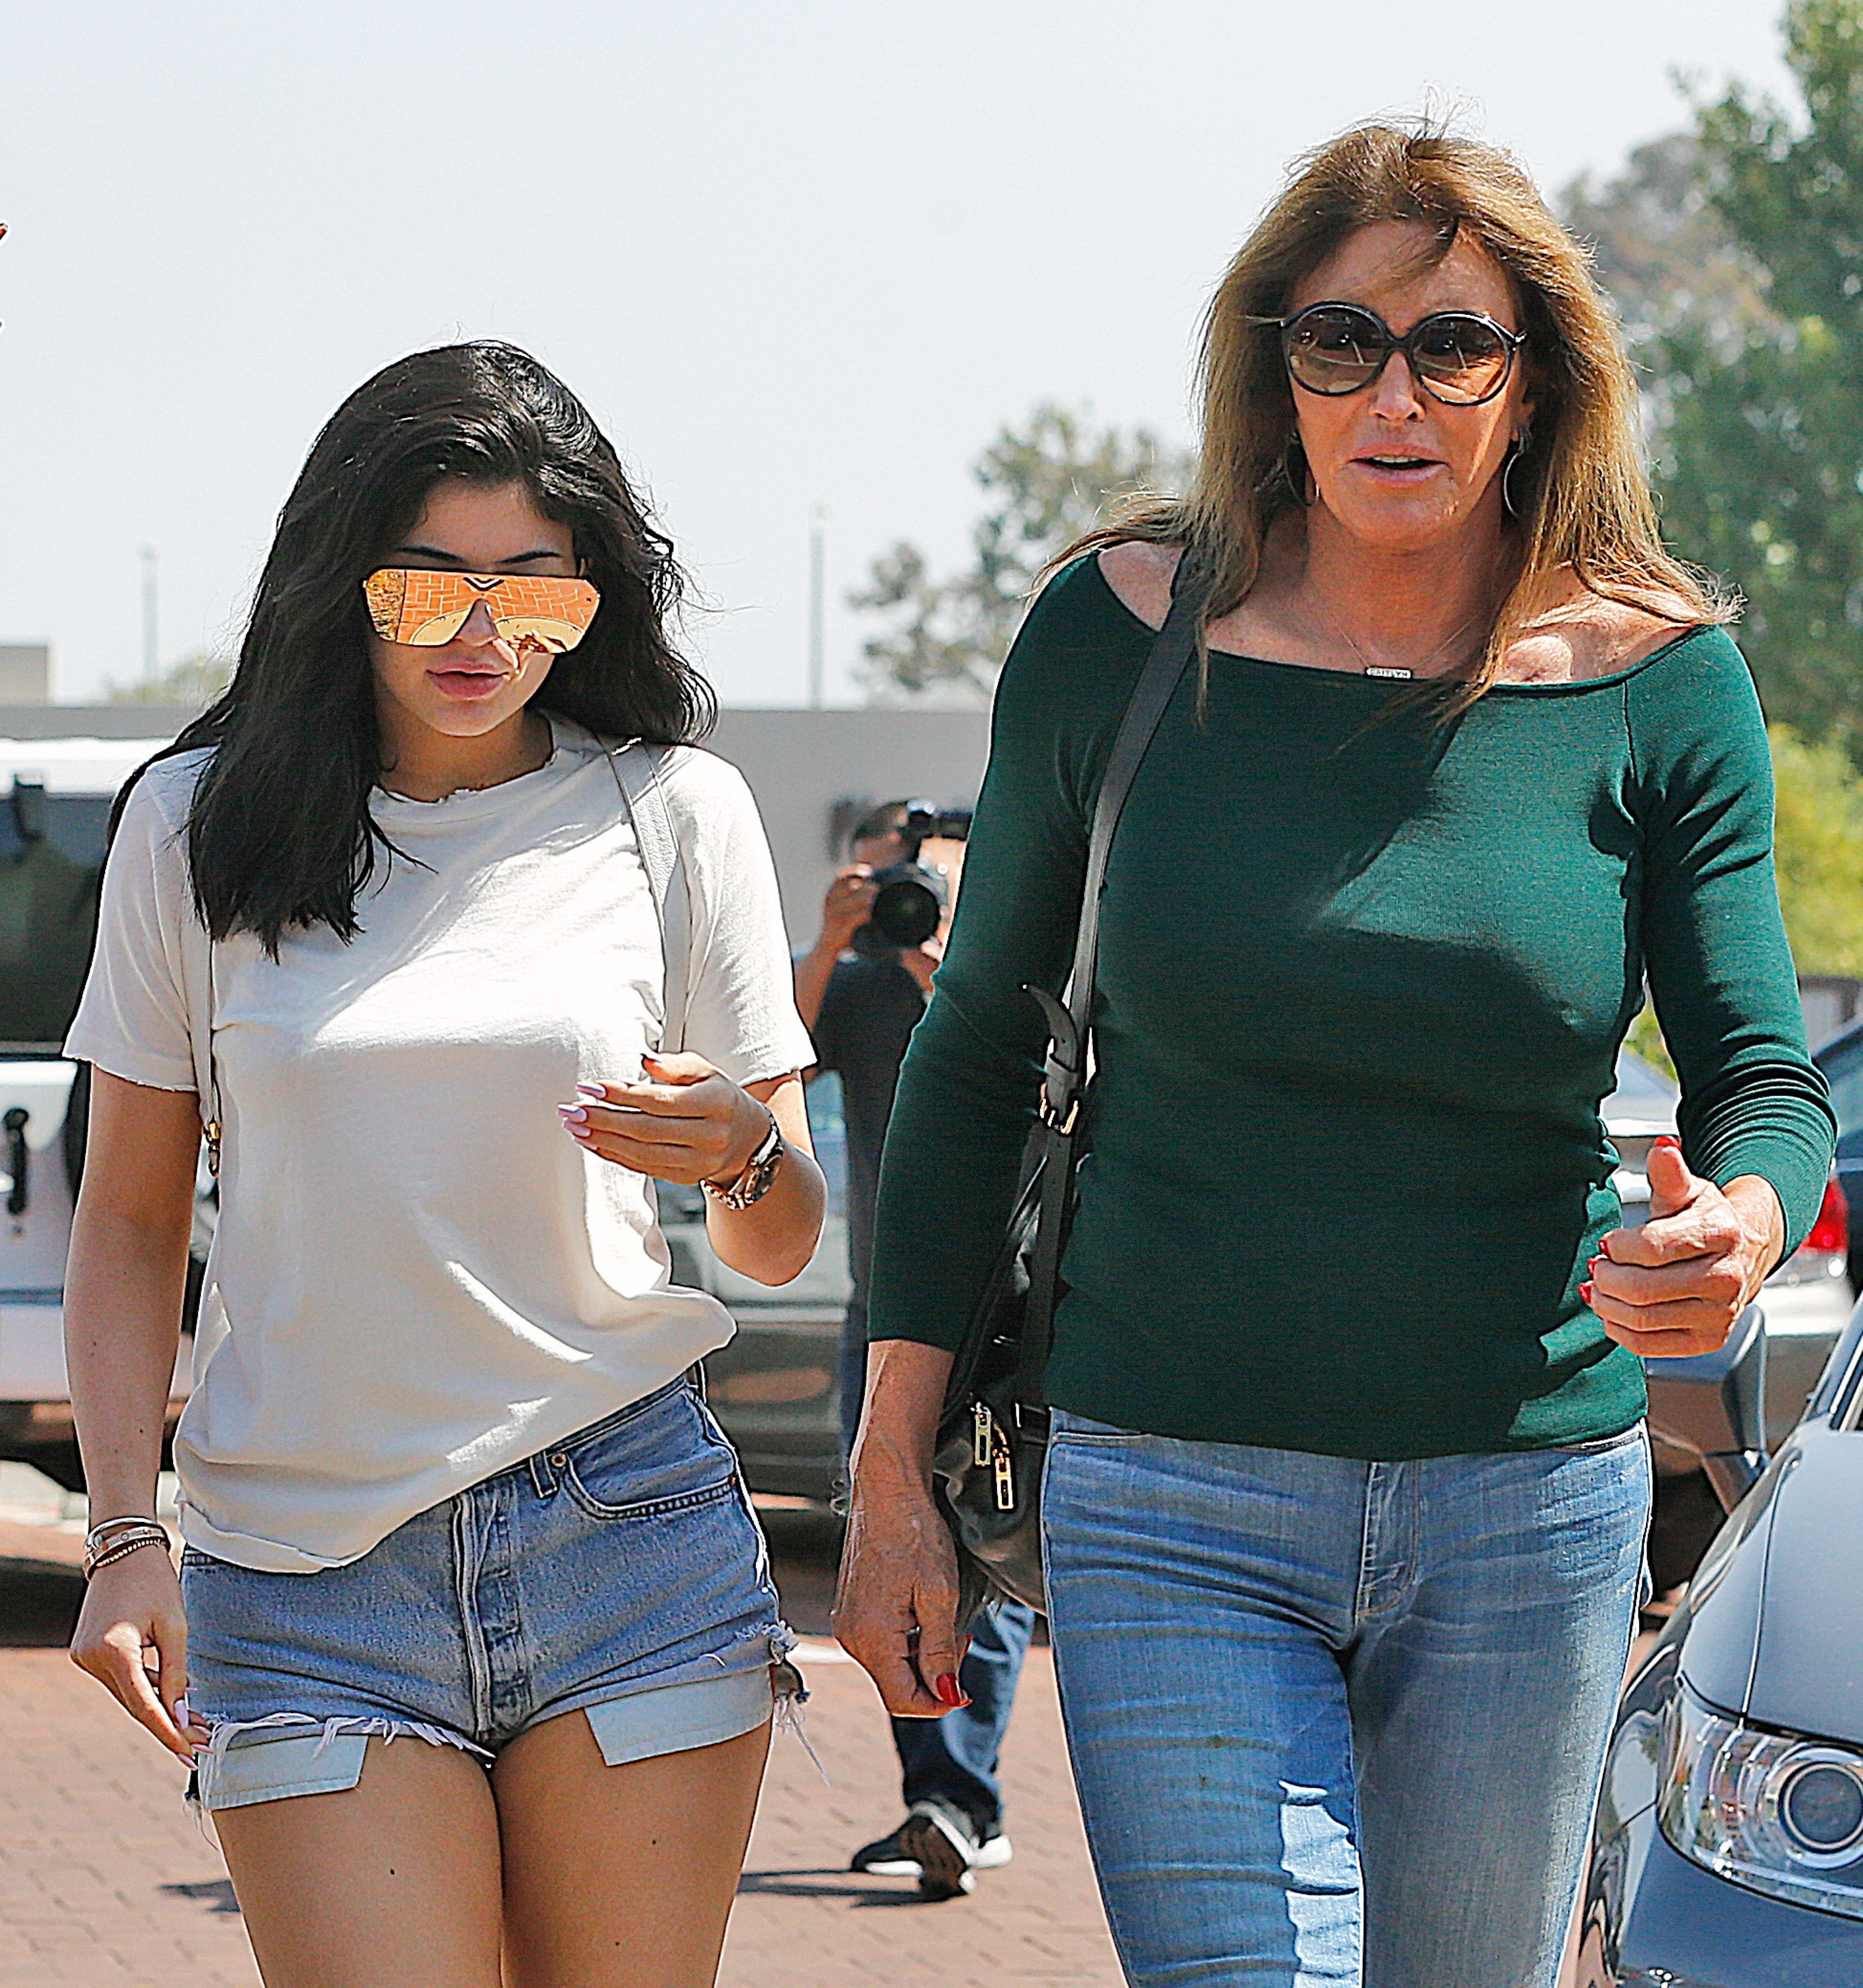 Caitlyn Jenner and Kylie Jenner hang out in Malibu, Calif., on June 4, 2016.